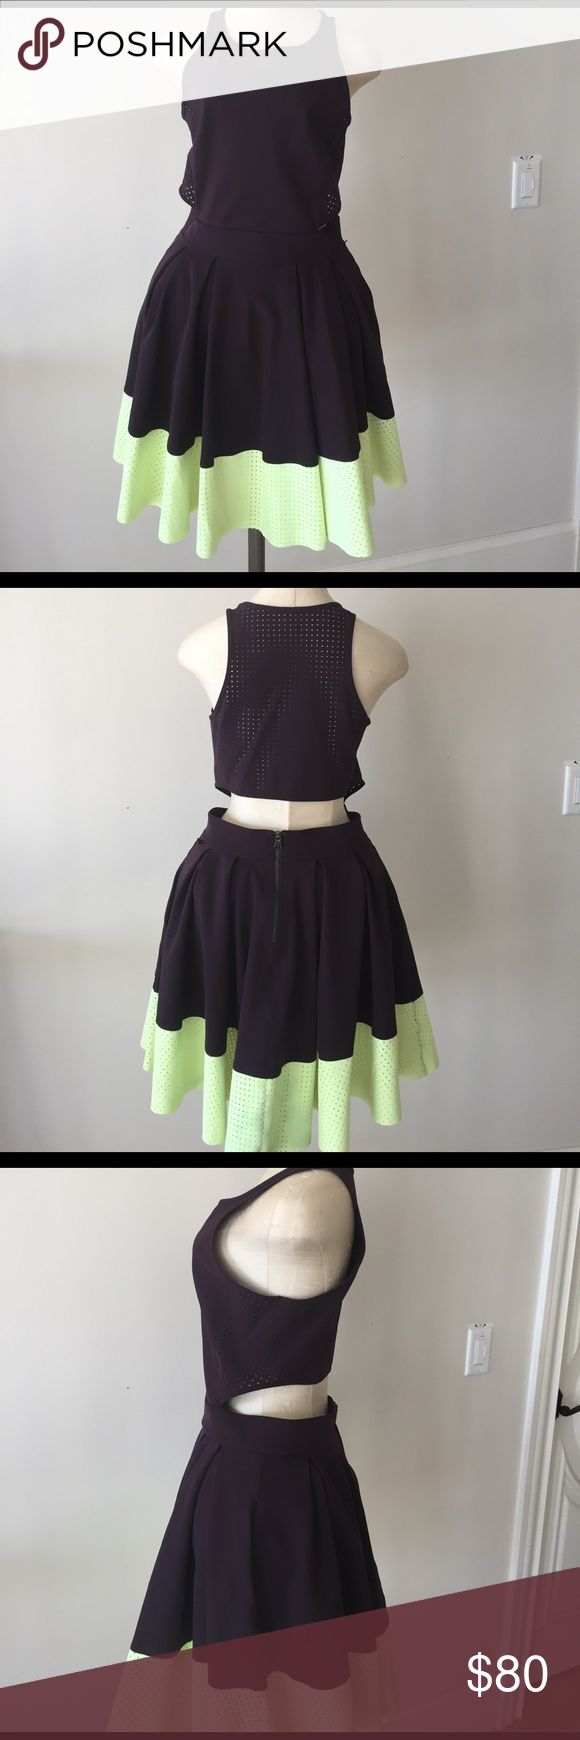 Lululemon dress Lululemon burgundy and lime green dress. Extremely flattering and comfortable with side/back openings and mesh upper back. Worn once, in excellent condition. lululemon athletica Dresses Mini